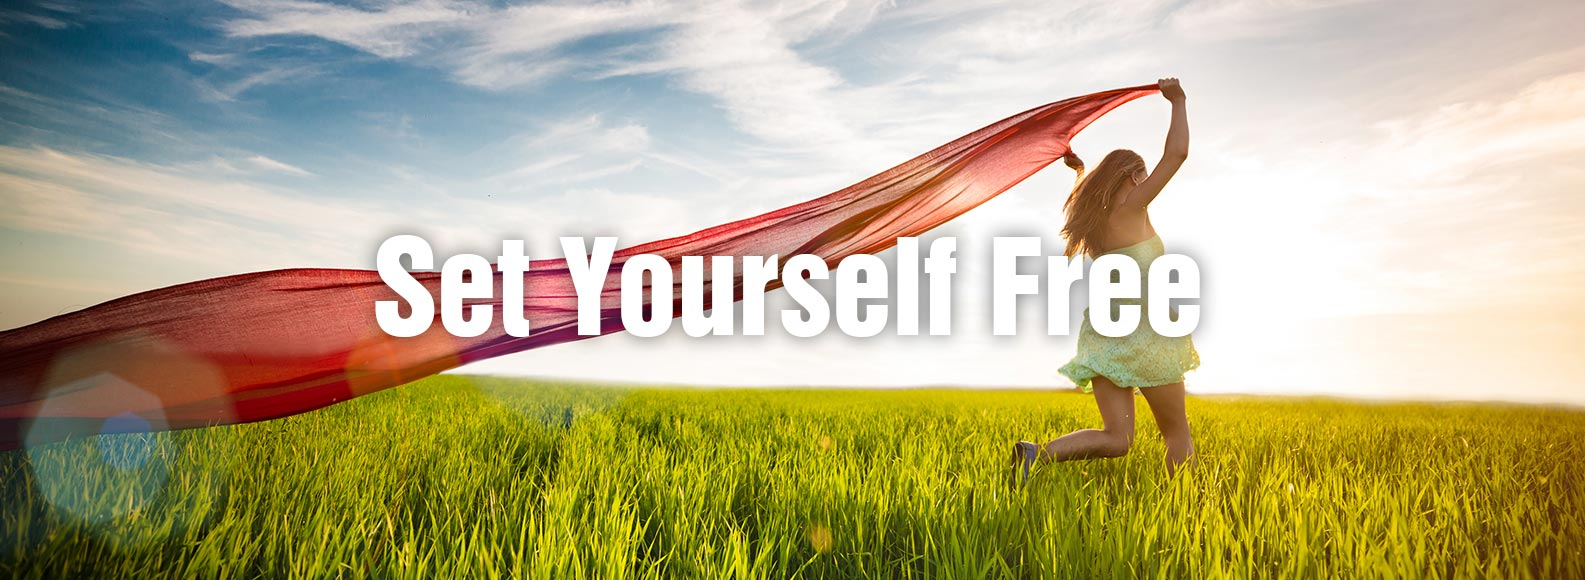 Set Yourself Free - Psychics Readings